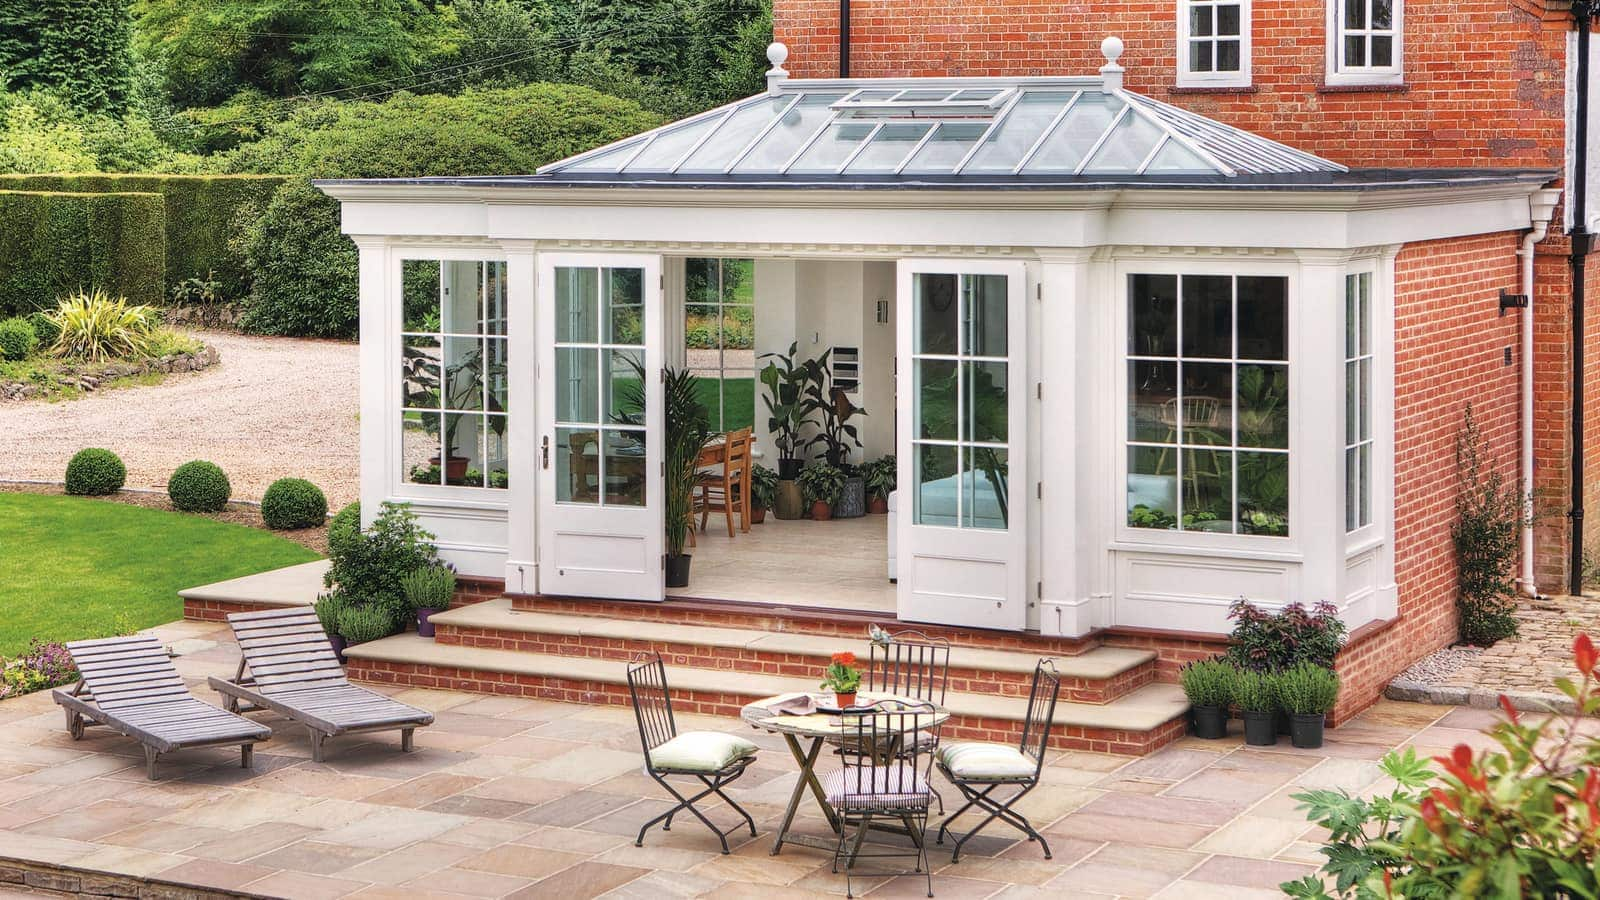 Classic orangery with a modern twist, allowing wide access to garden